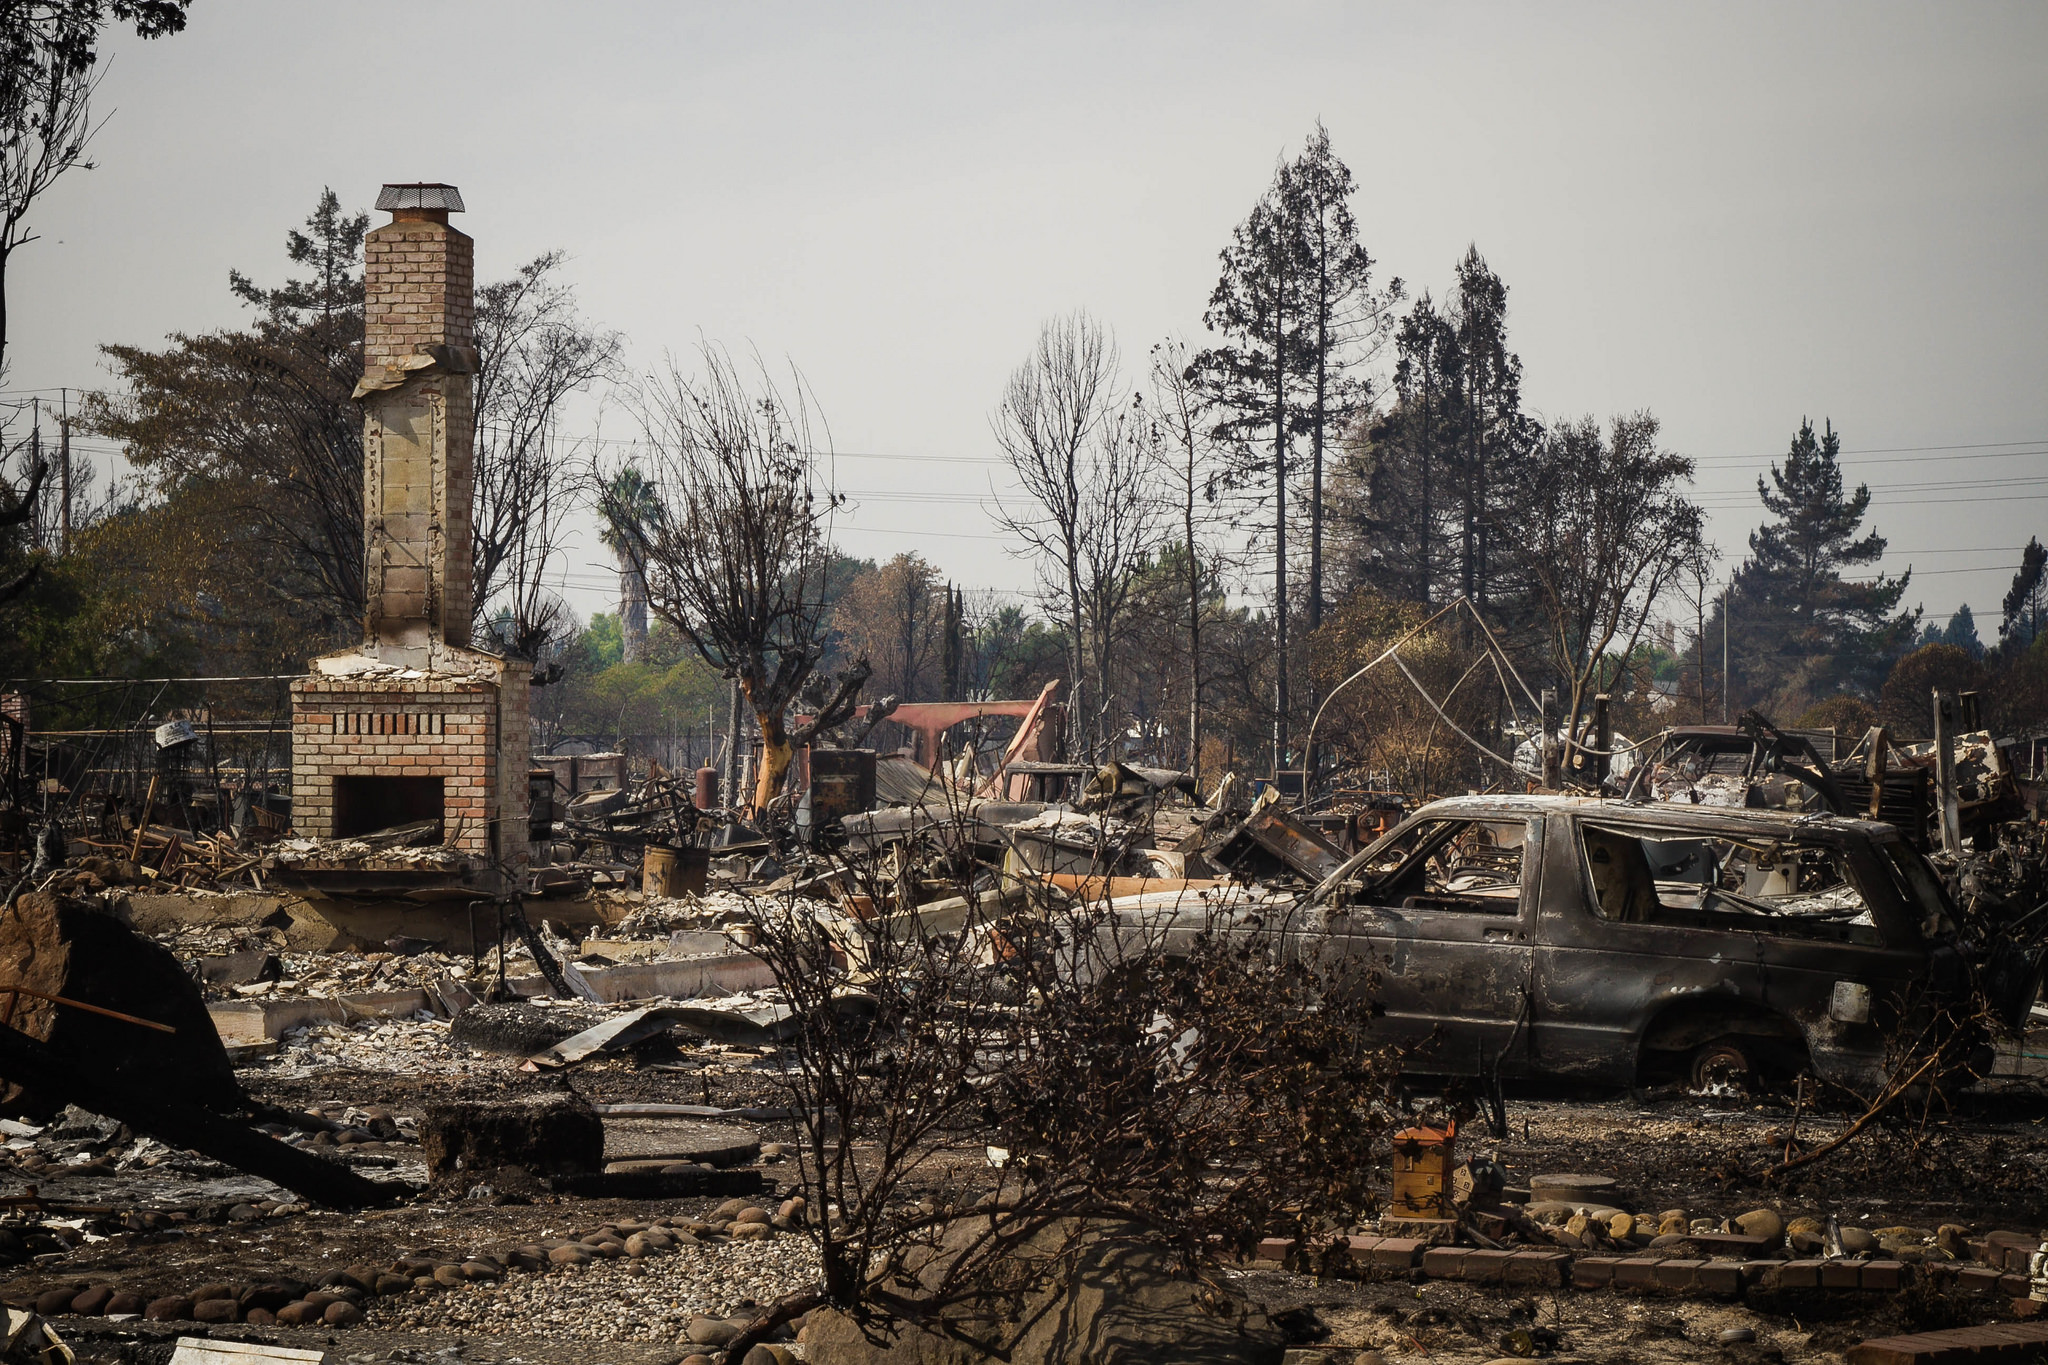 Aftermath of sonoma county's tubbs fire in the coffey park neighborhood of santa rosa, California. Image by  the national guard .